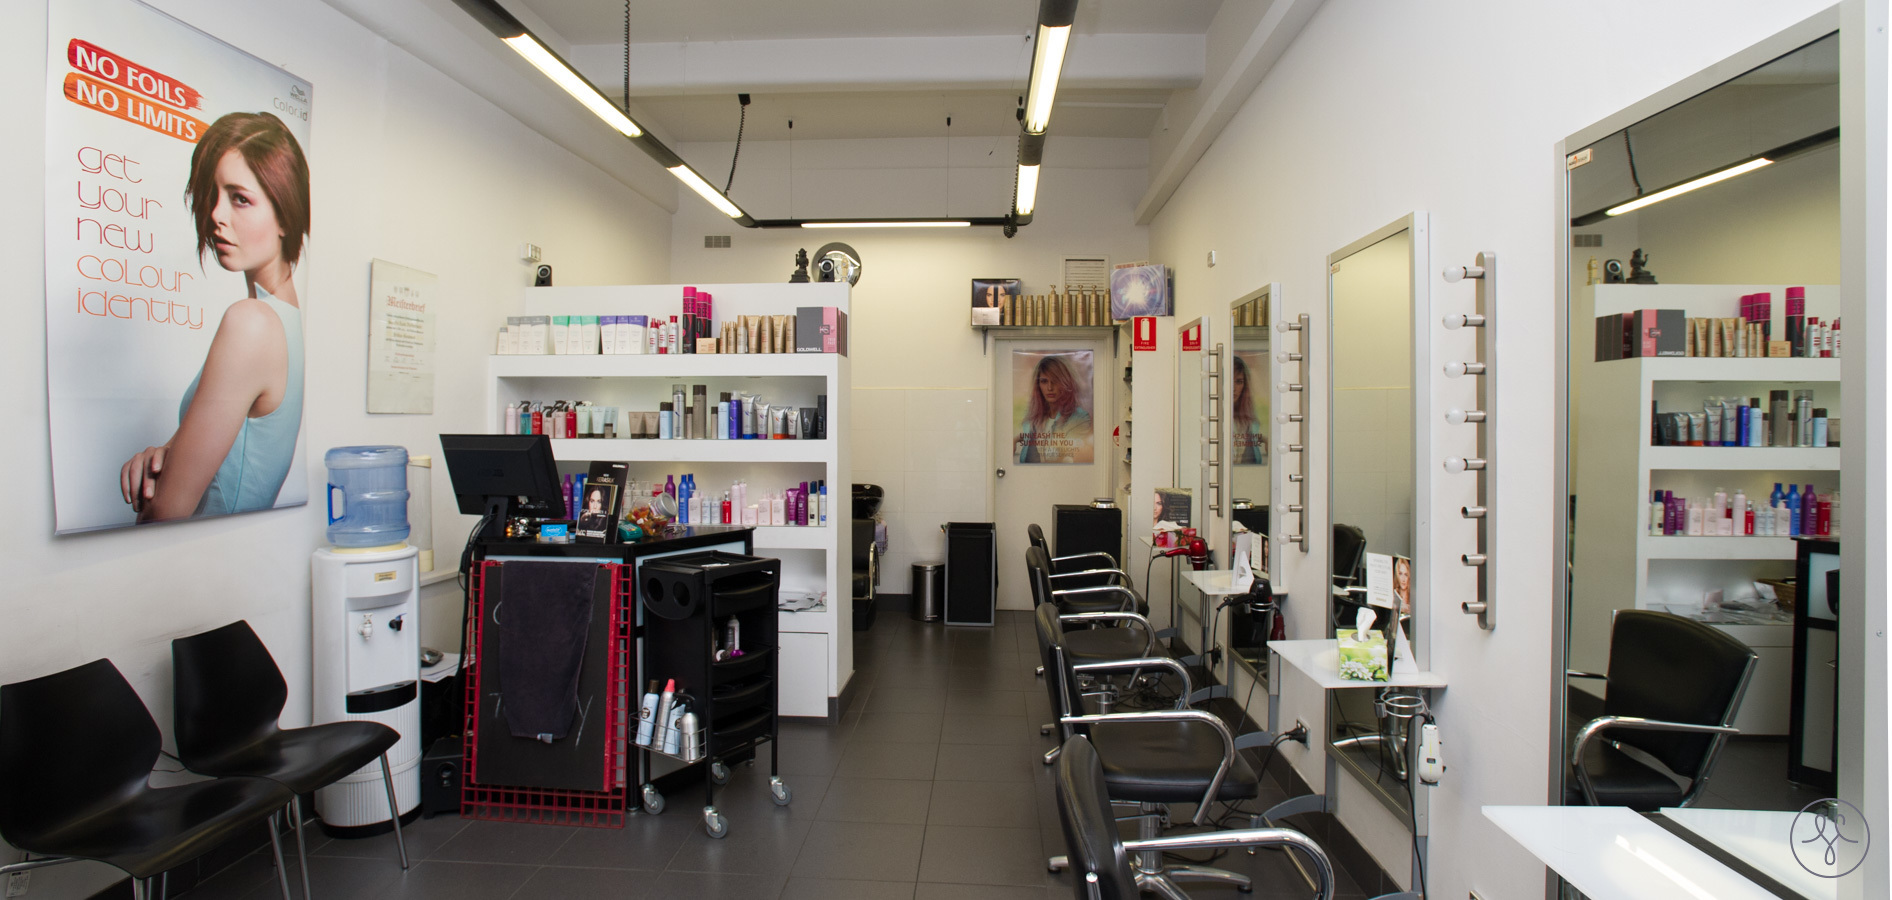 Activa hair and fashion 1187 20150825 xue baida34f39ae2341a3ad2df311ee66e515a199947a9